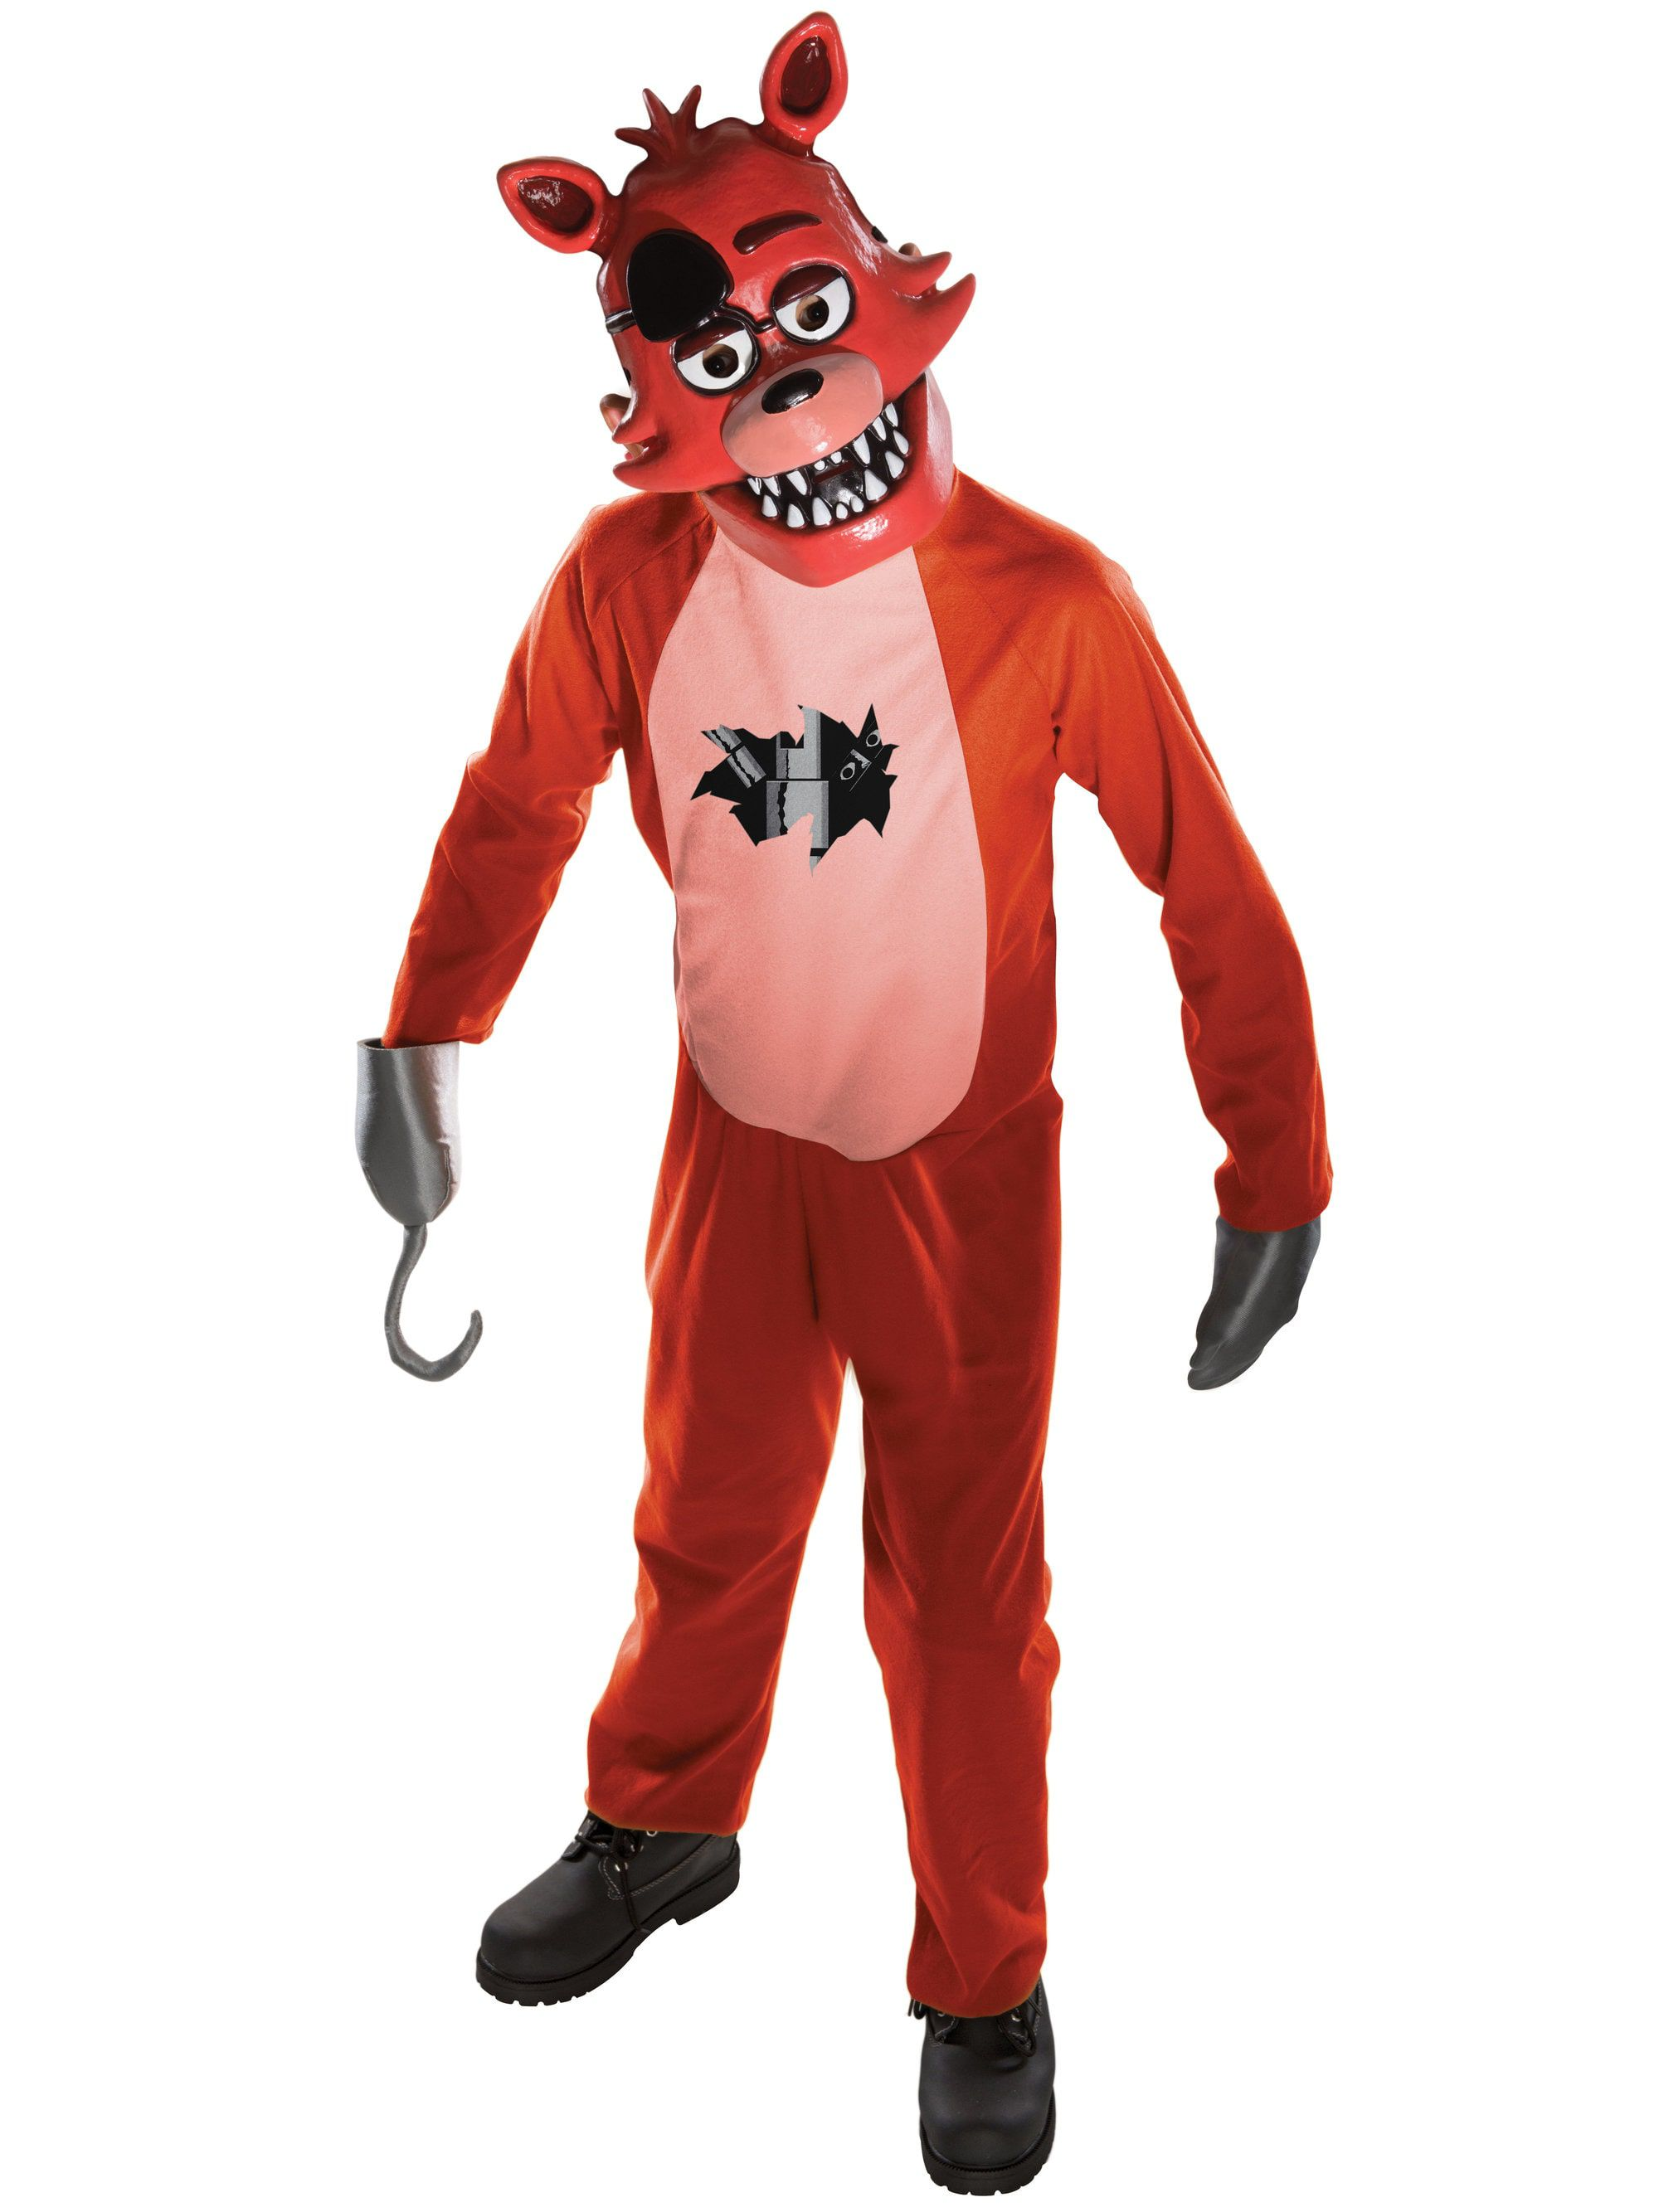 Childrens Five Nights at Freddyu0027s Foxy Costume  sc 1 st  Wholesale Halloween Costumes & Childrens Five Nights at Freddyu0027s Foxy Costume - Boys Costumes for ...